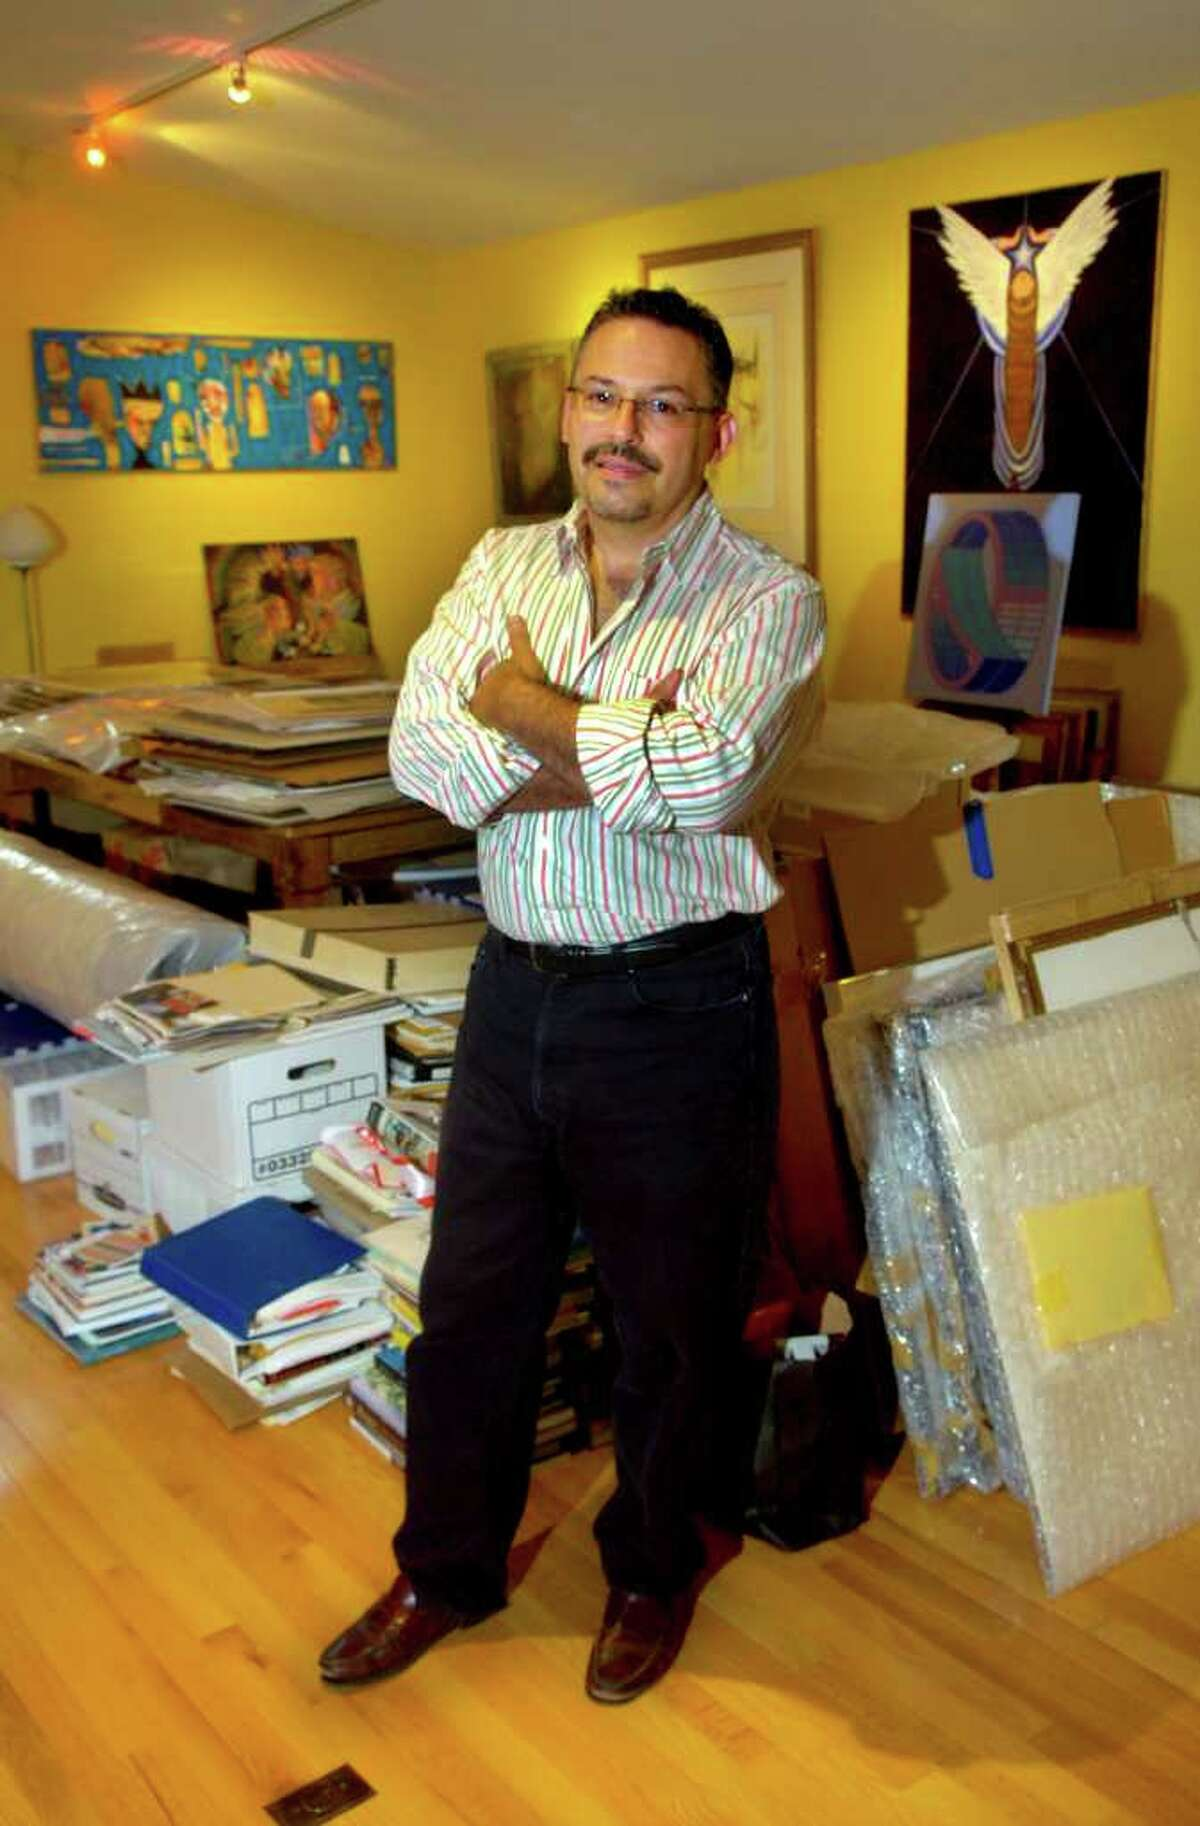 Ben Ortiz poses for a photo surrounded by his library of books and artwork stored in the studio on his property in Ridgefield. Ortiz is curating four art shows simultaneously in September.